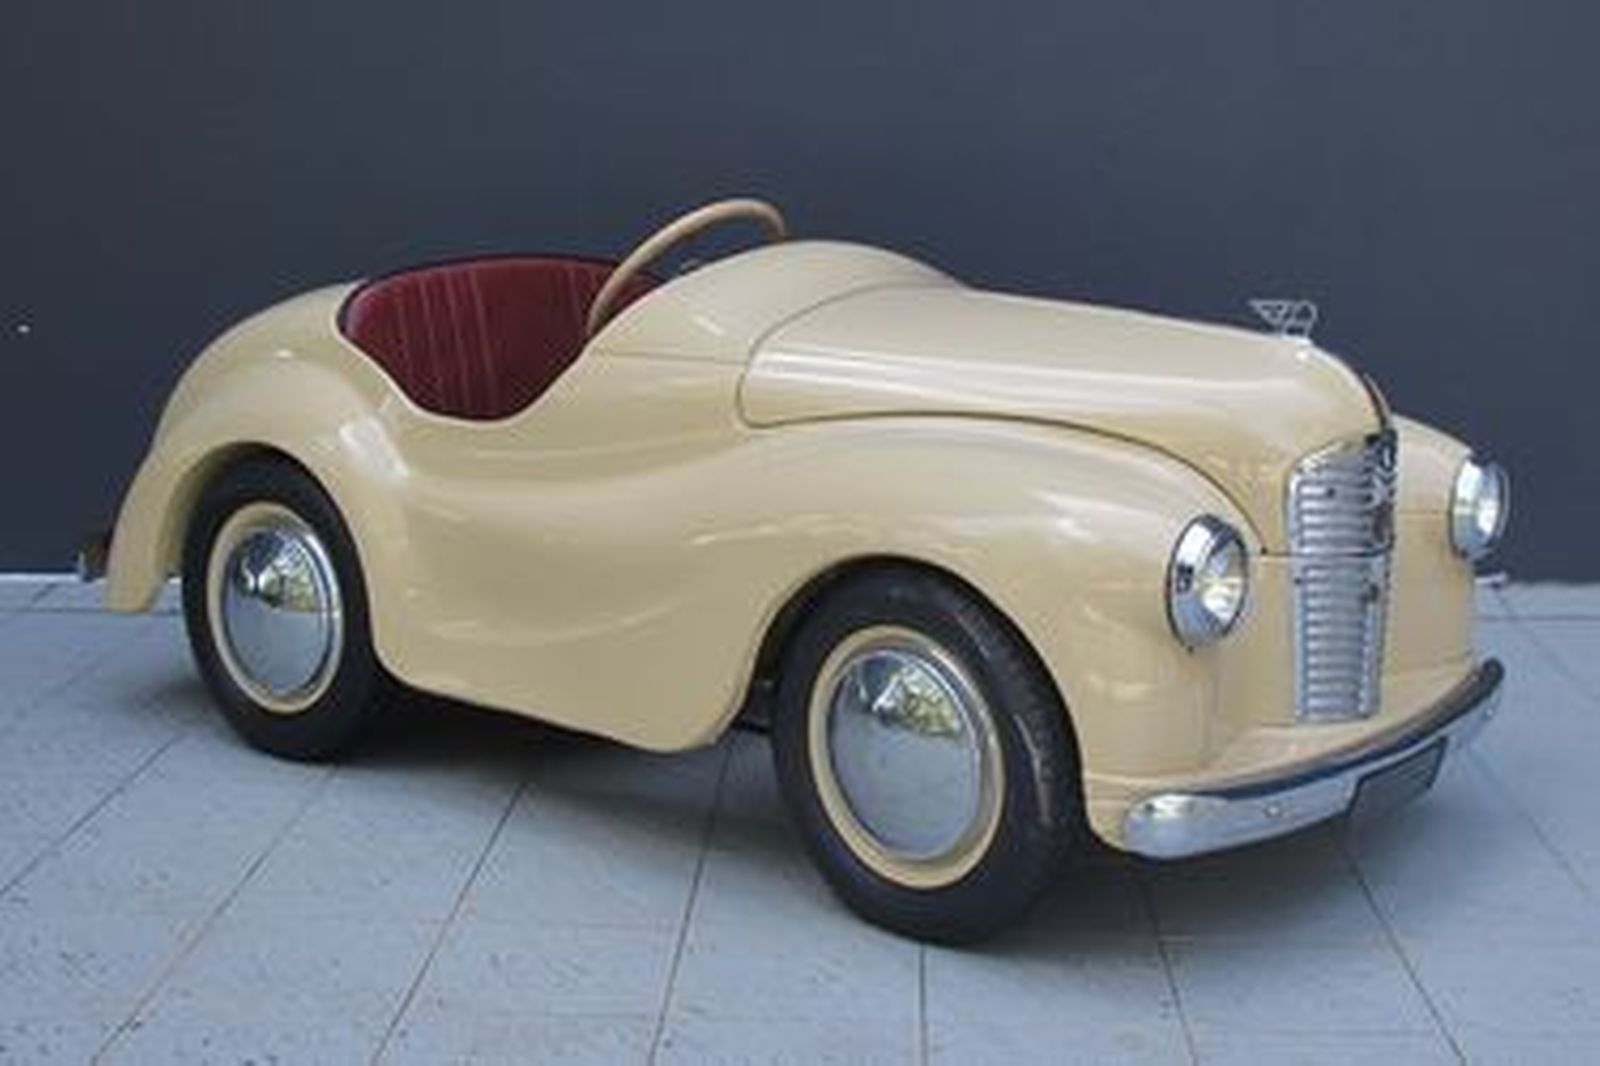 Sold Pedal Car C1950 S Austin J40 Pedal Car 1 6m Long X 0 7m Wide Auctions Lot Y Shannons